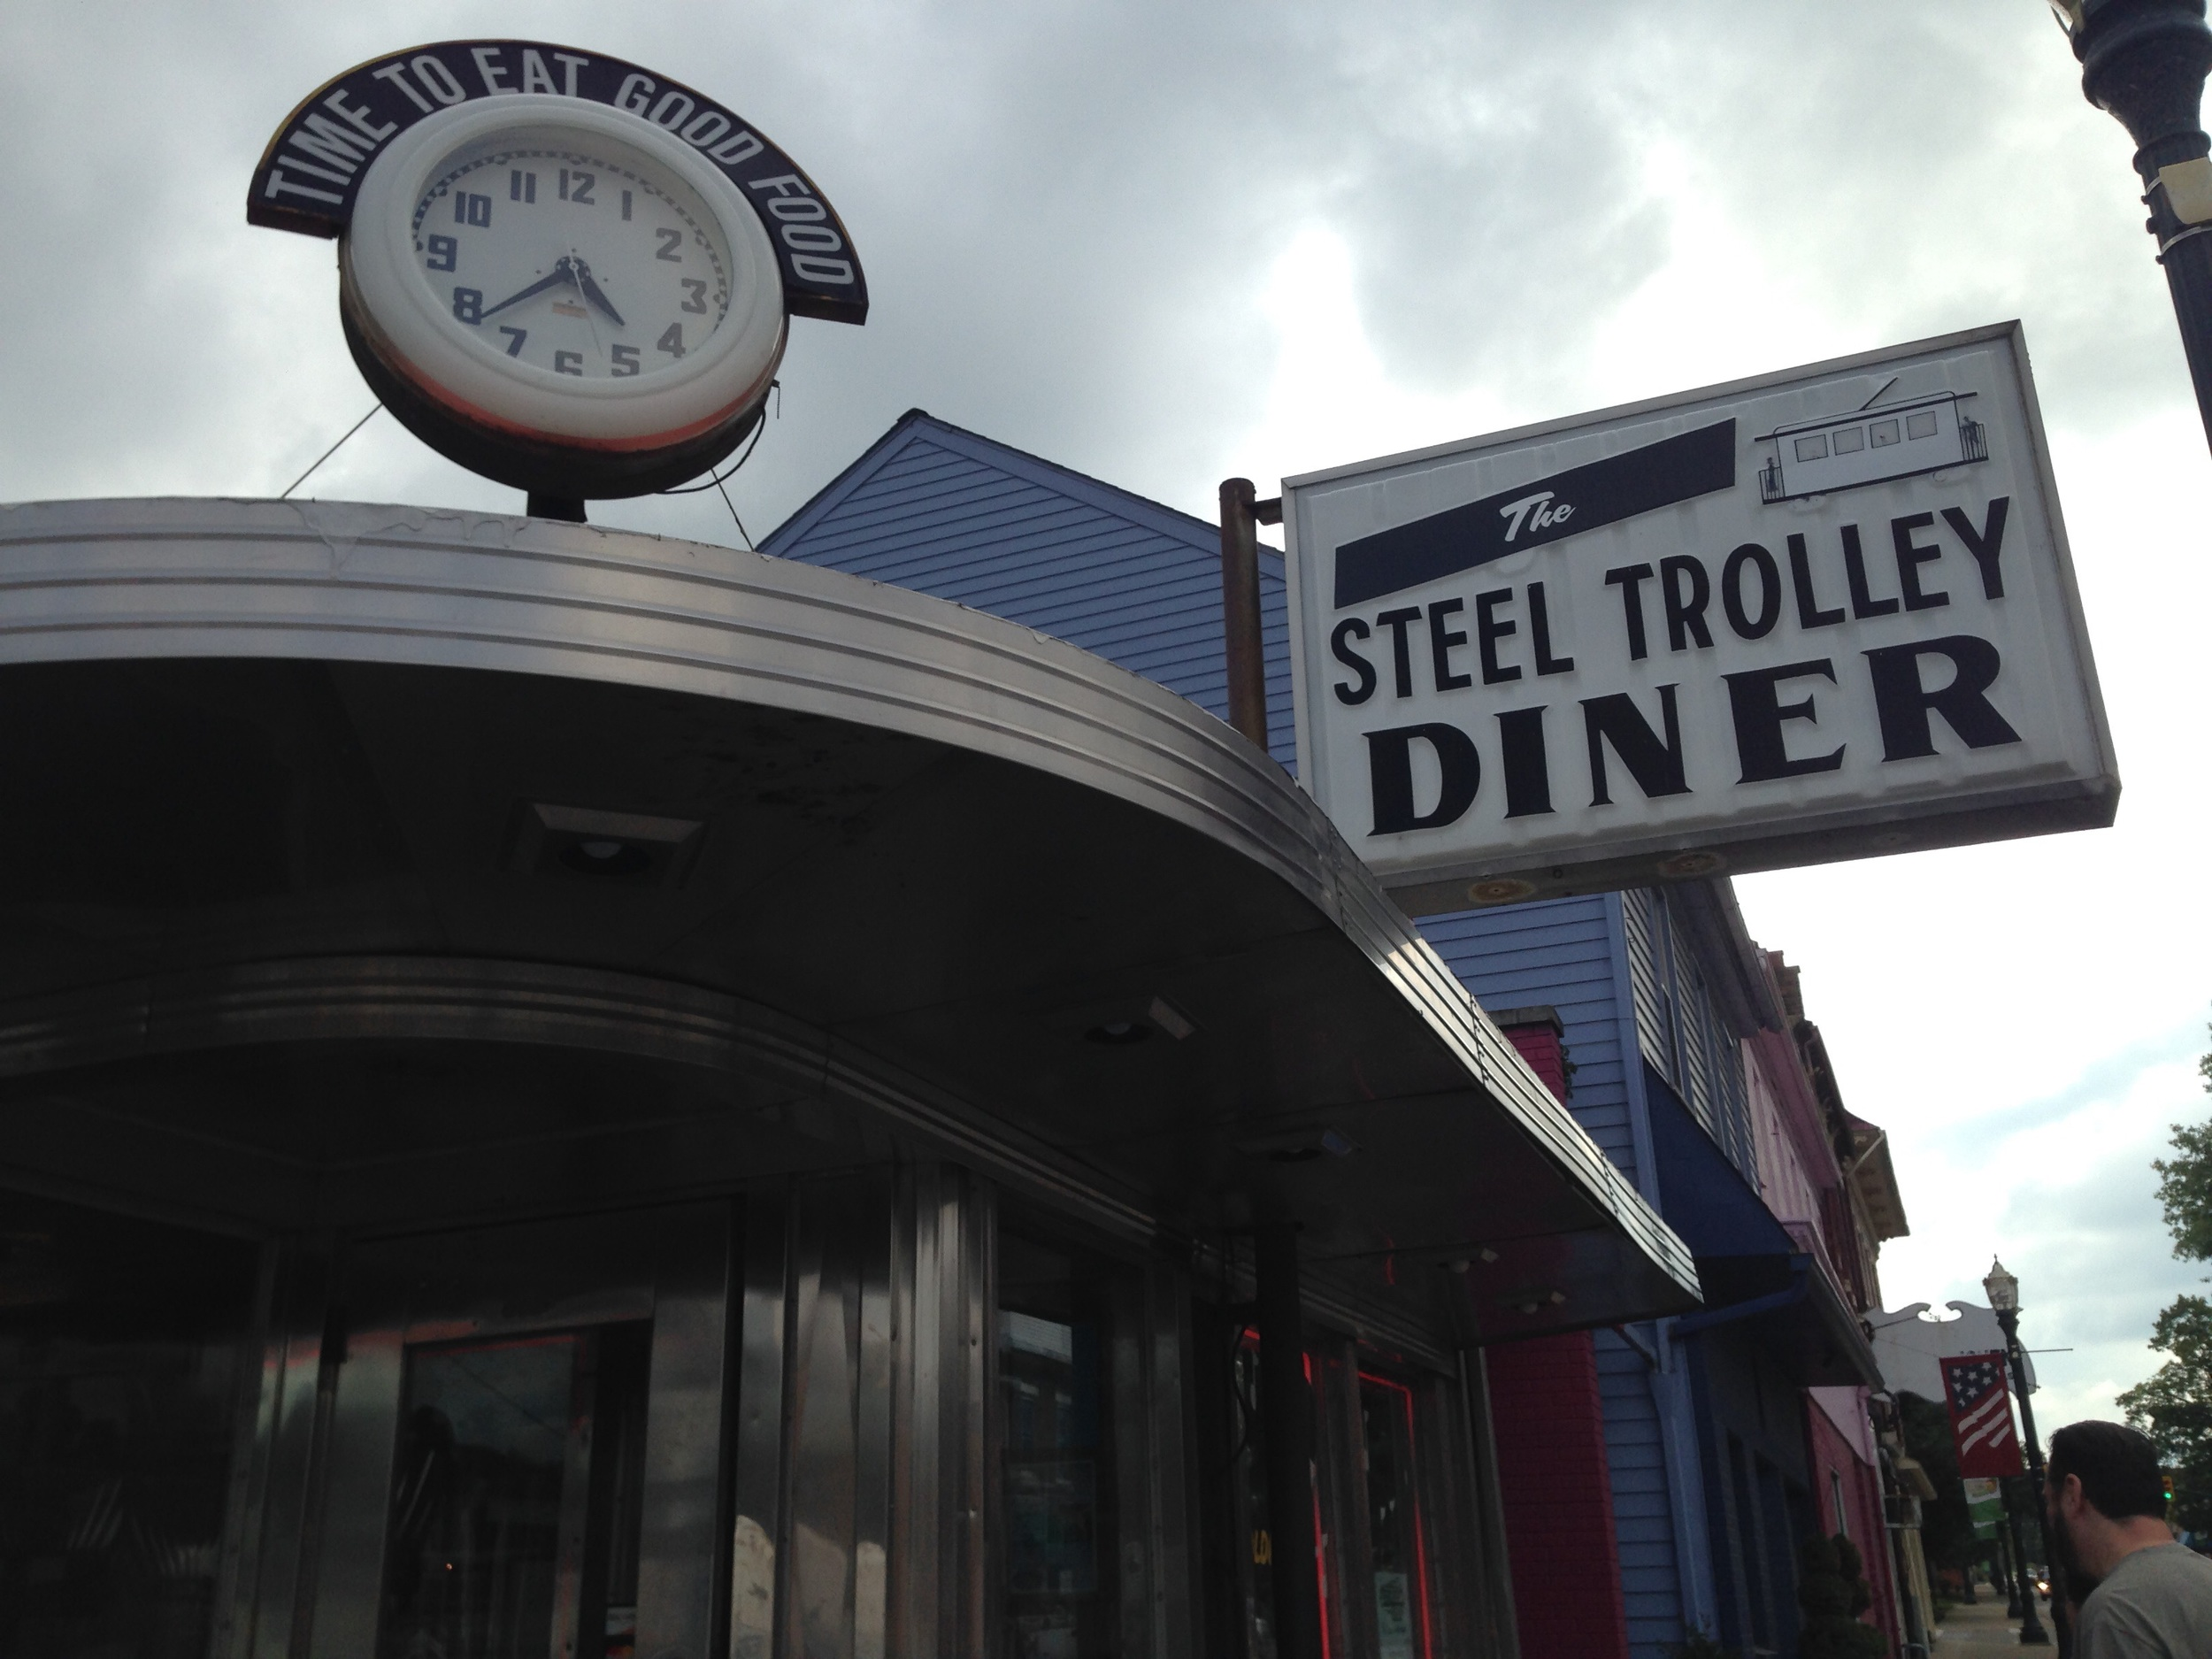 The Steel Trolley Diner in Lisbon OH